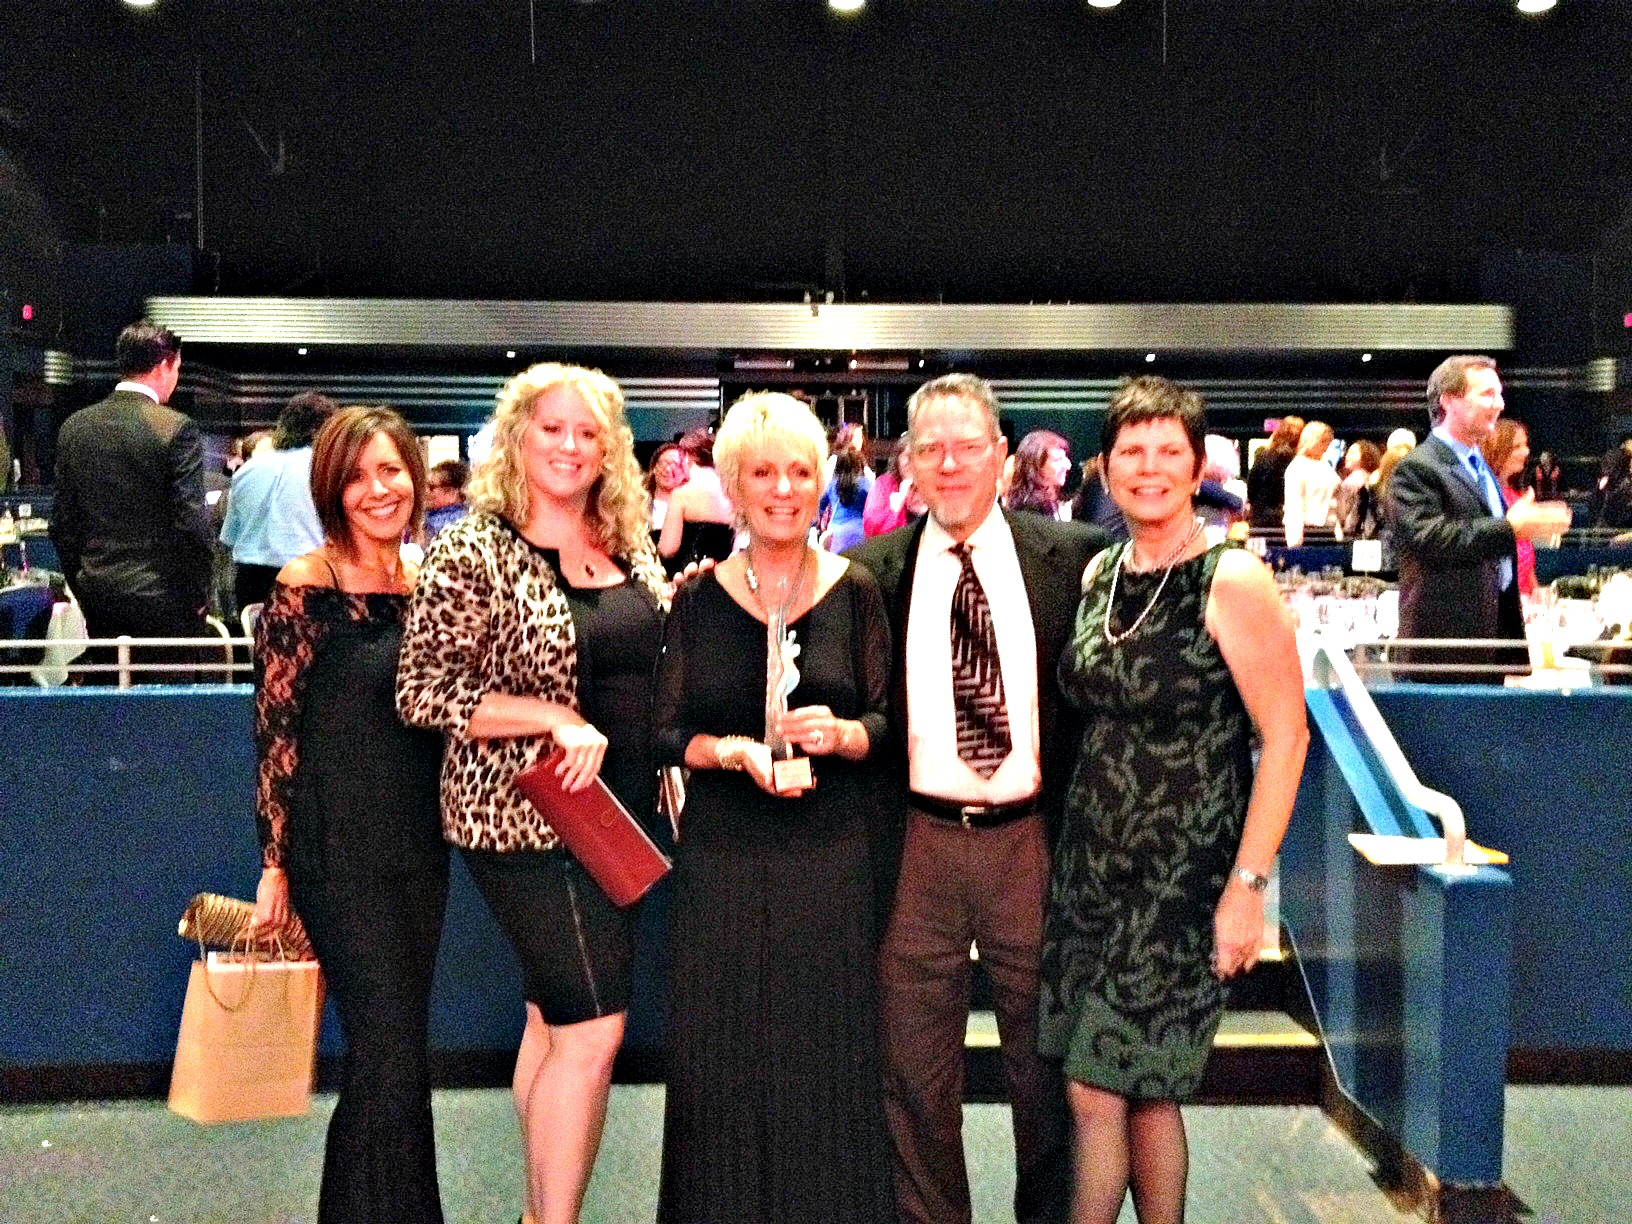 Decision Toolbox team supporting Kim Shepherd's NAWBO-OC RW Innovator Award